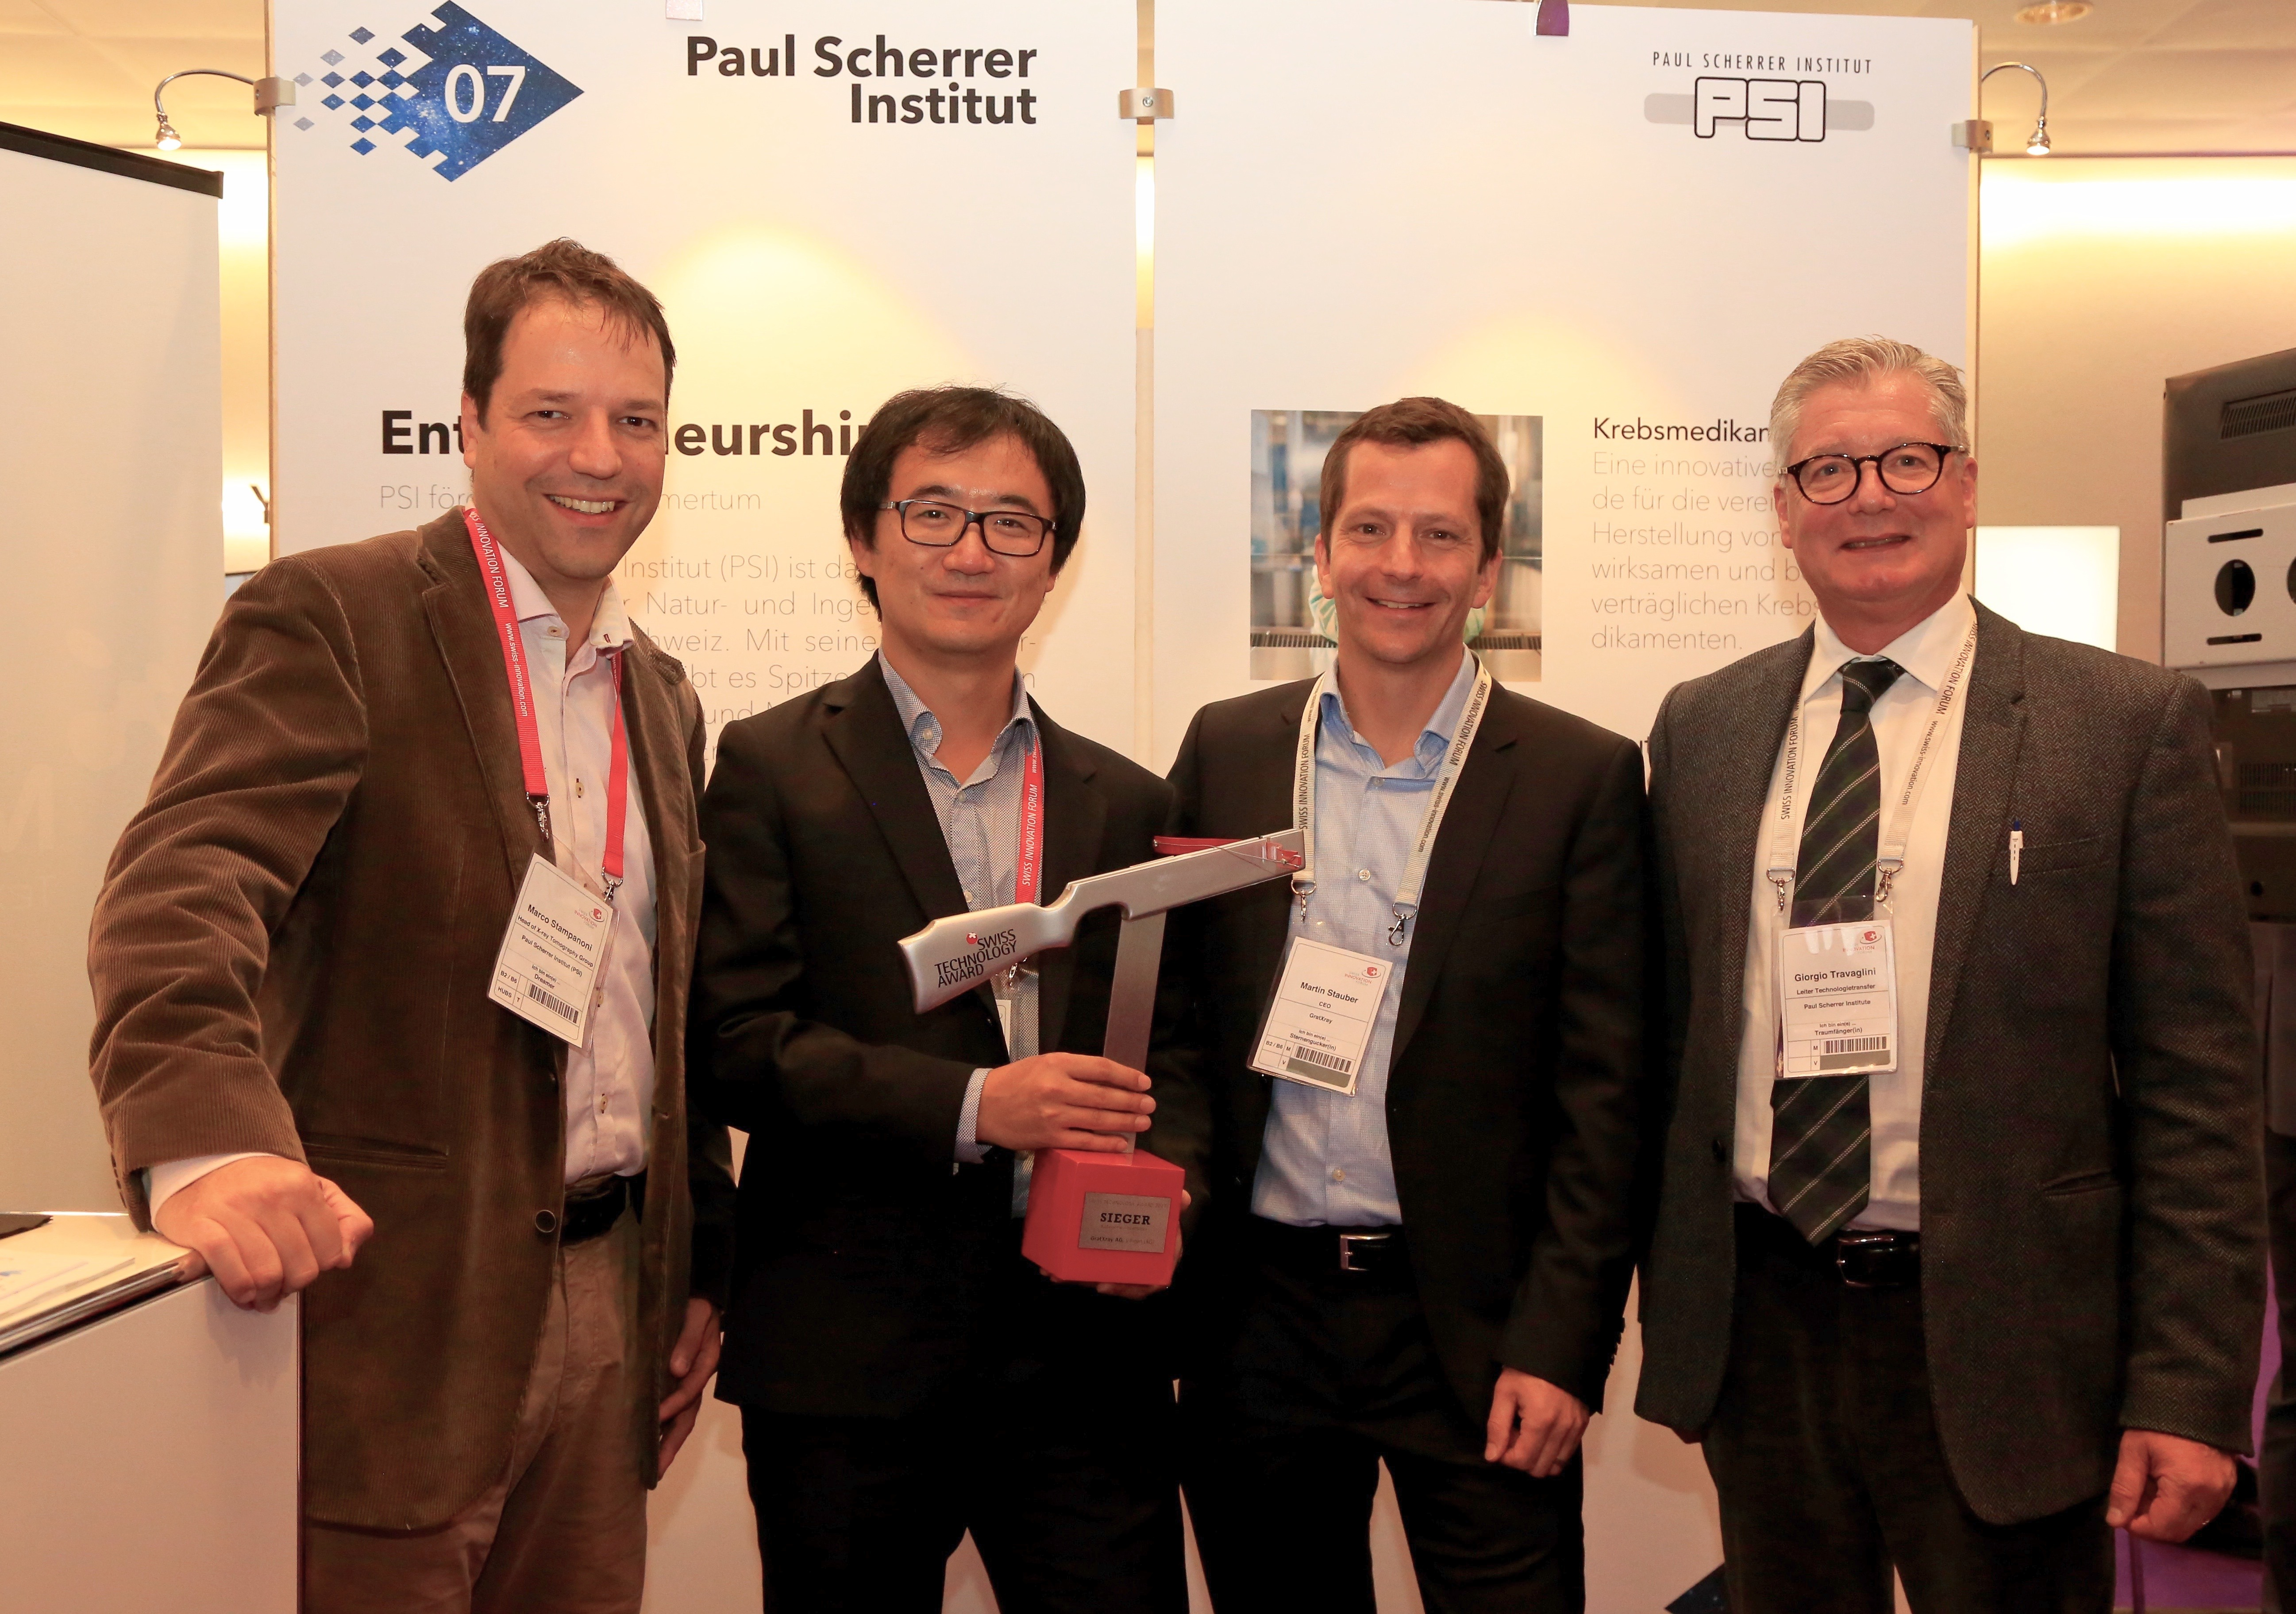 The Swiss Technology Award in the Inventors category goes to the PSI spin-off GratXray. Accepting the prize, from left to right: Marco Stampanoni, Zhentian Wang, Martin Stauber (CEO of GratXray), and Giorgio Travaglini (head of Technology Transfer at PSI). (Photo: Paul Scherrer Institute)